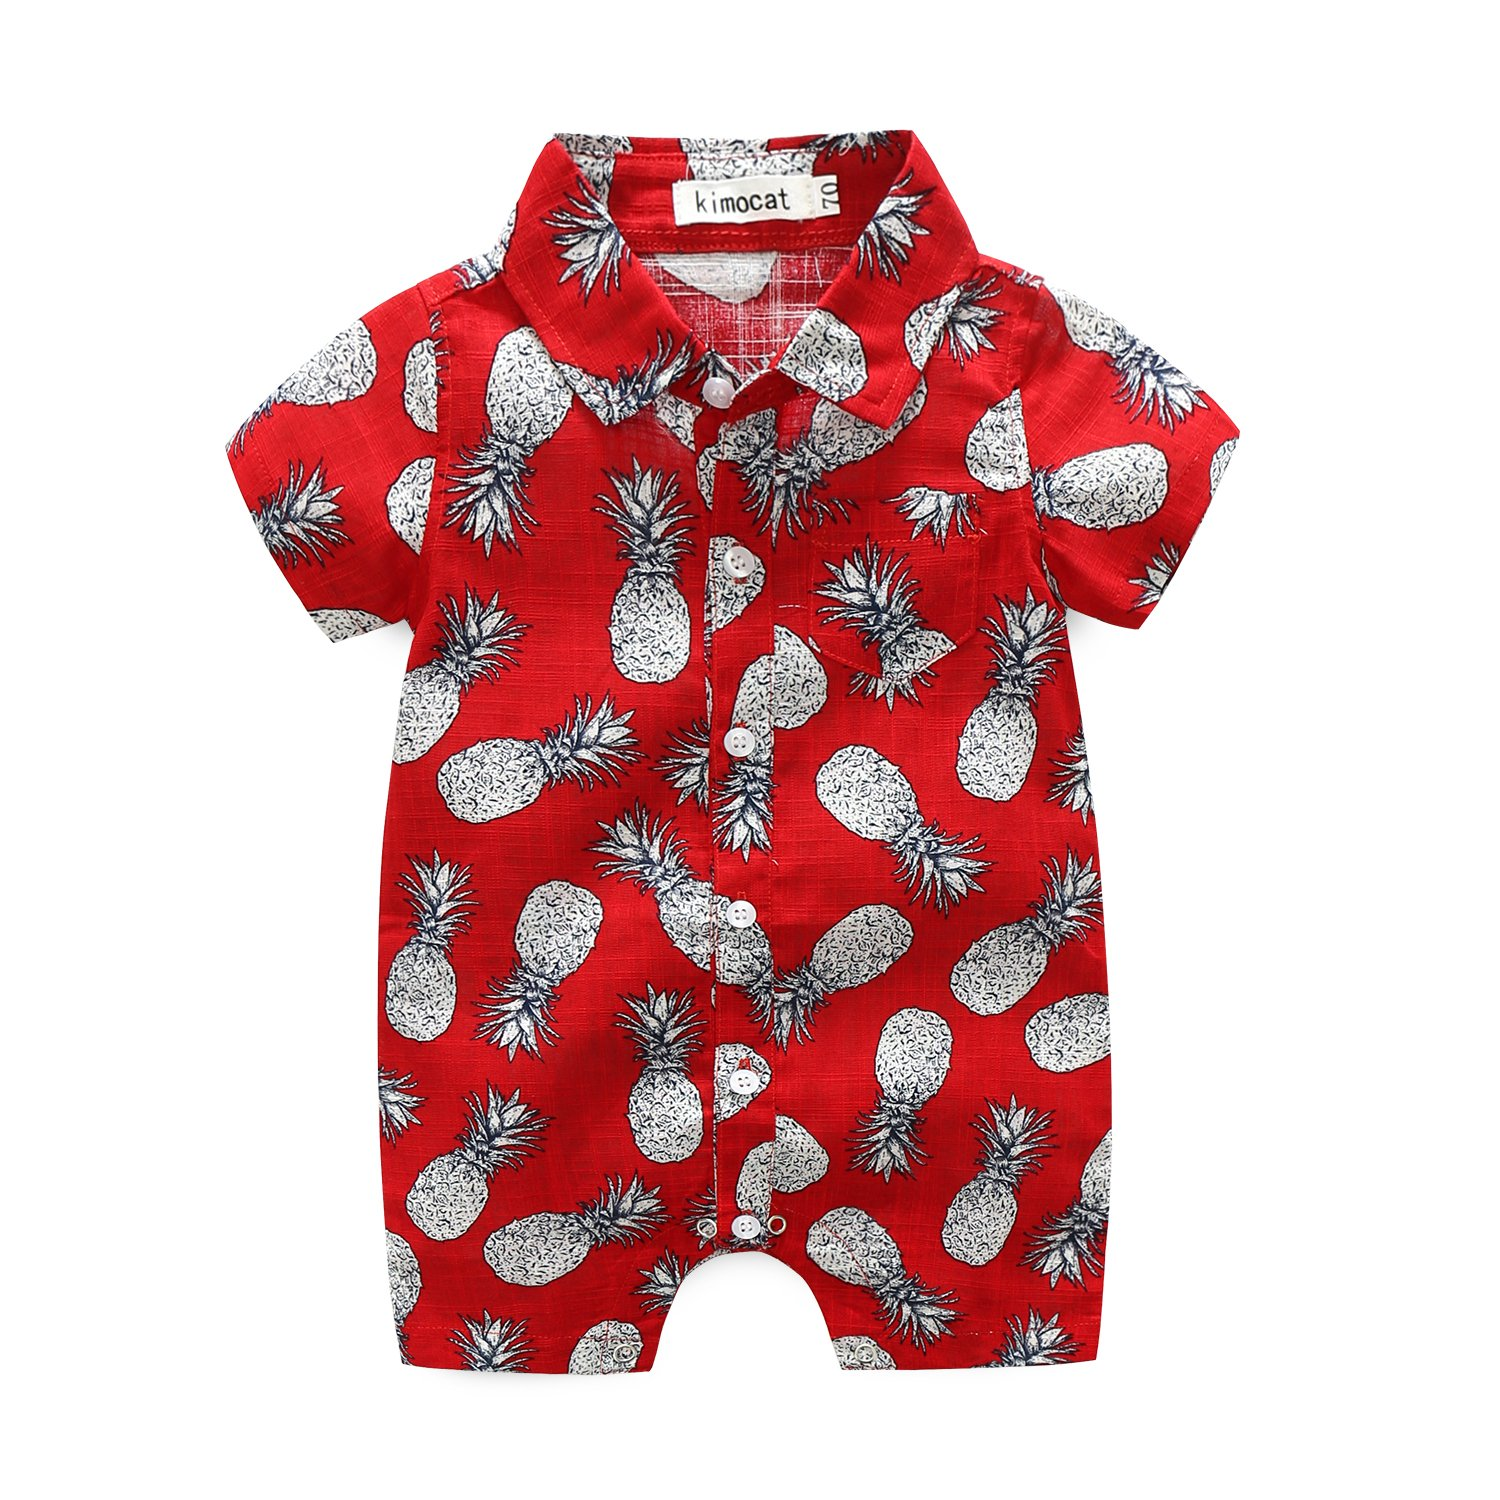 MHSH Newborn Baby Boys Short Sleeve Onesies Summer Printing Button-Down Polyester Casual Hawaiian Shirt Romper Outfits (9-12M, red)